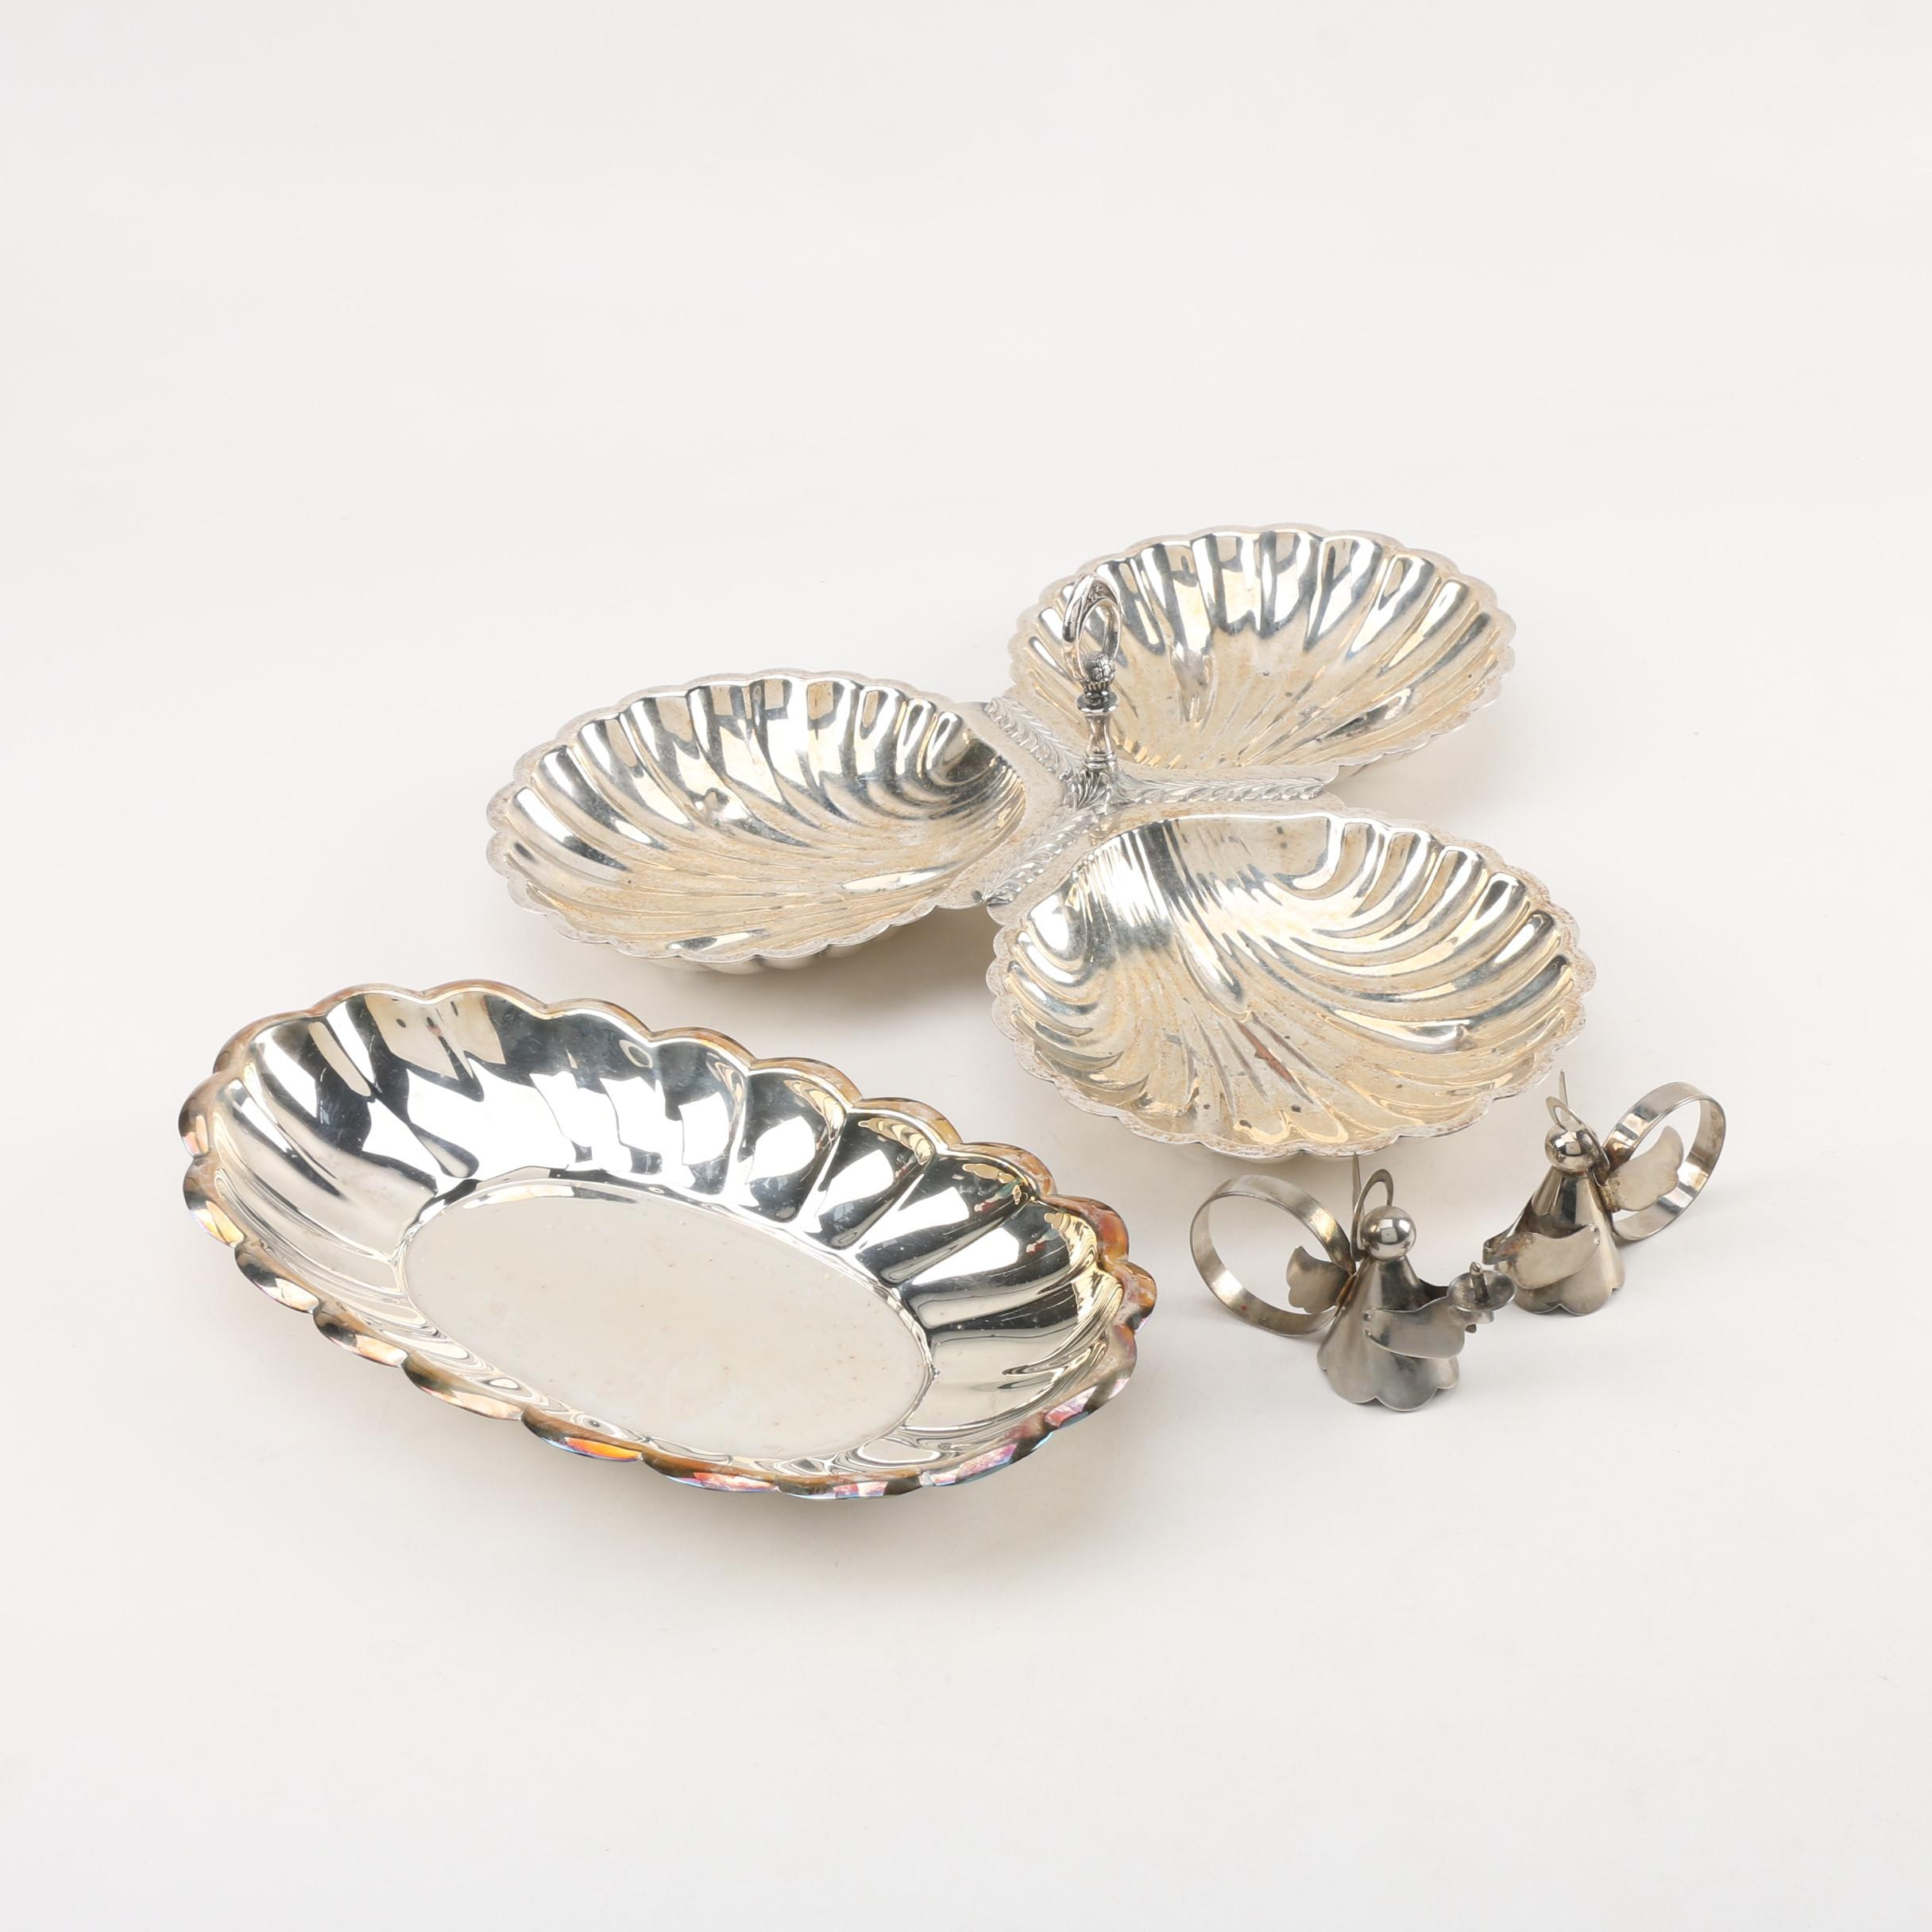 Friedman Silver Co. Three-Part Relish Dish with Other Silver Plate Tableware